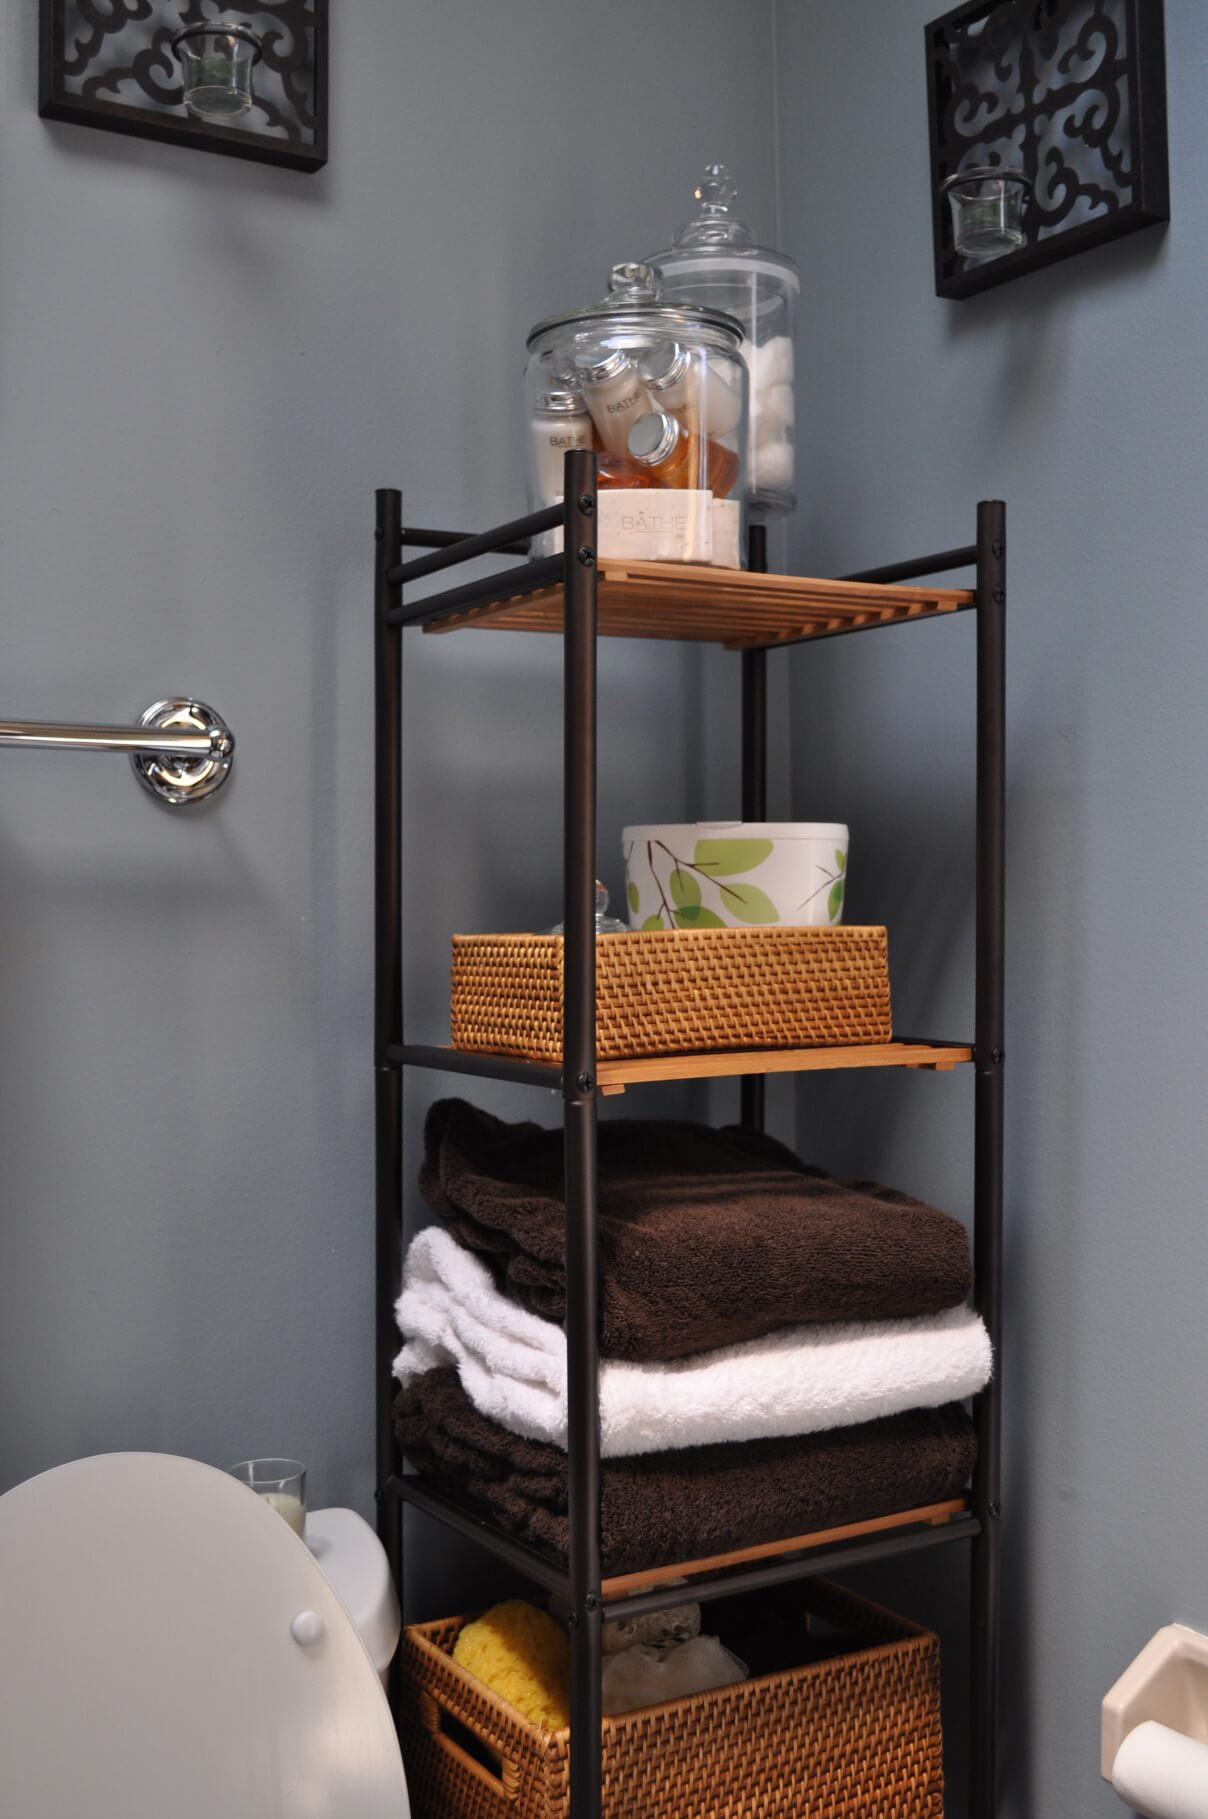 Best Small Bathroom Storage Ideas And Tips For - Bathroom towel basket ideas for small bathroom ideas